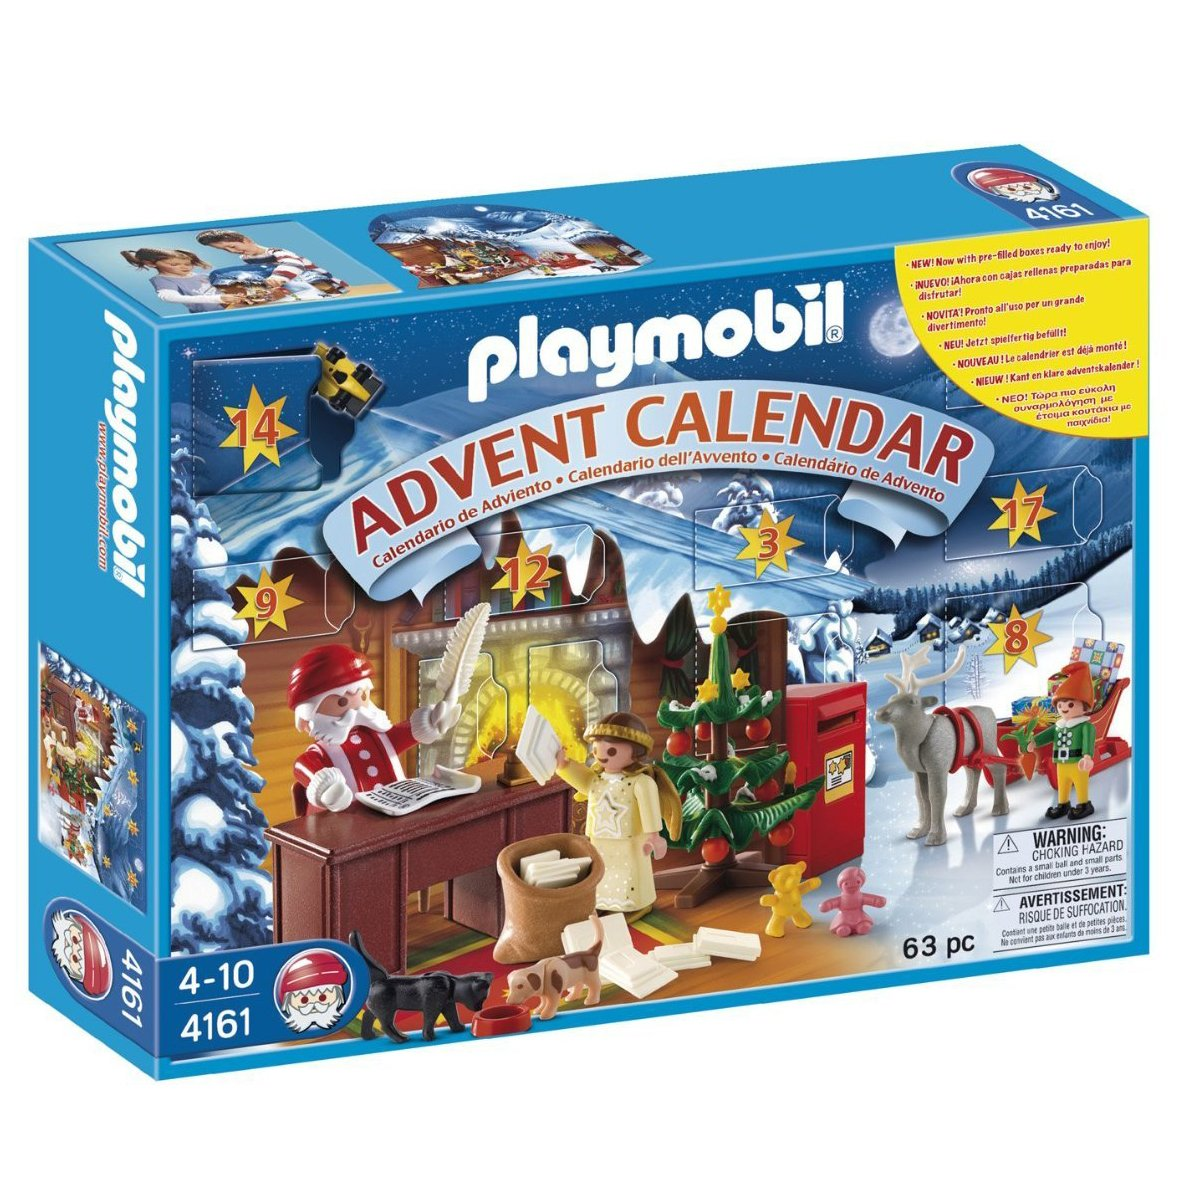 Playmobil 4161 Advent Calendar Christmas Post Office